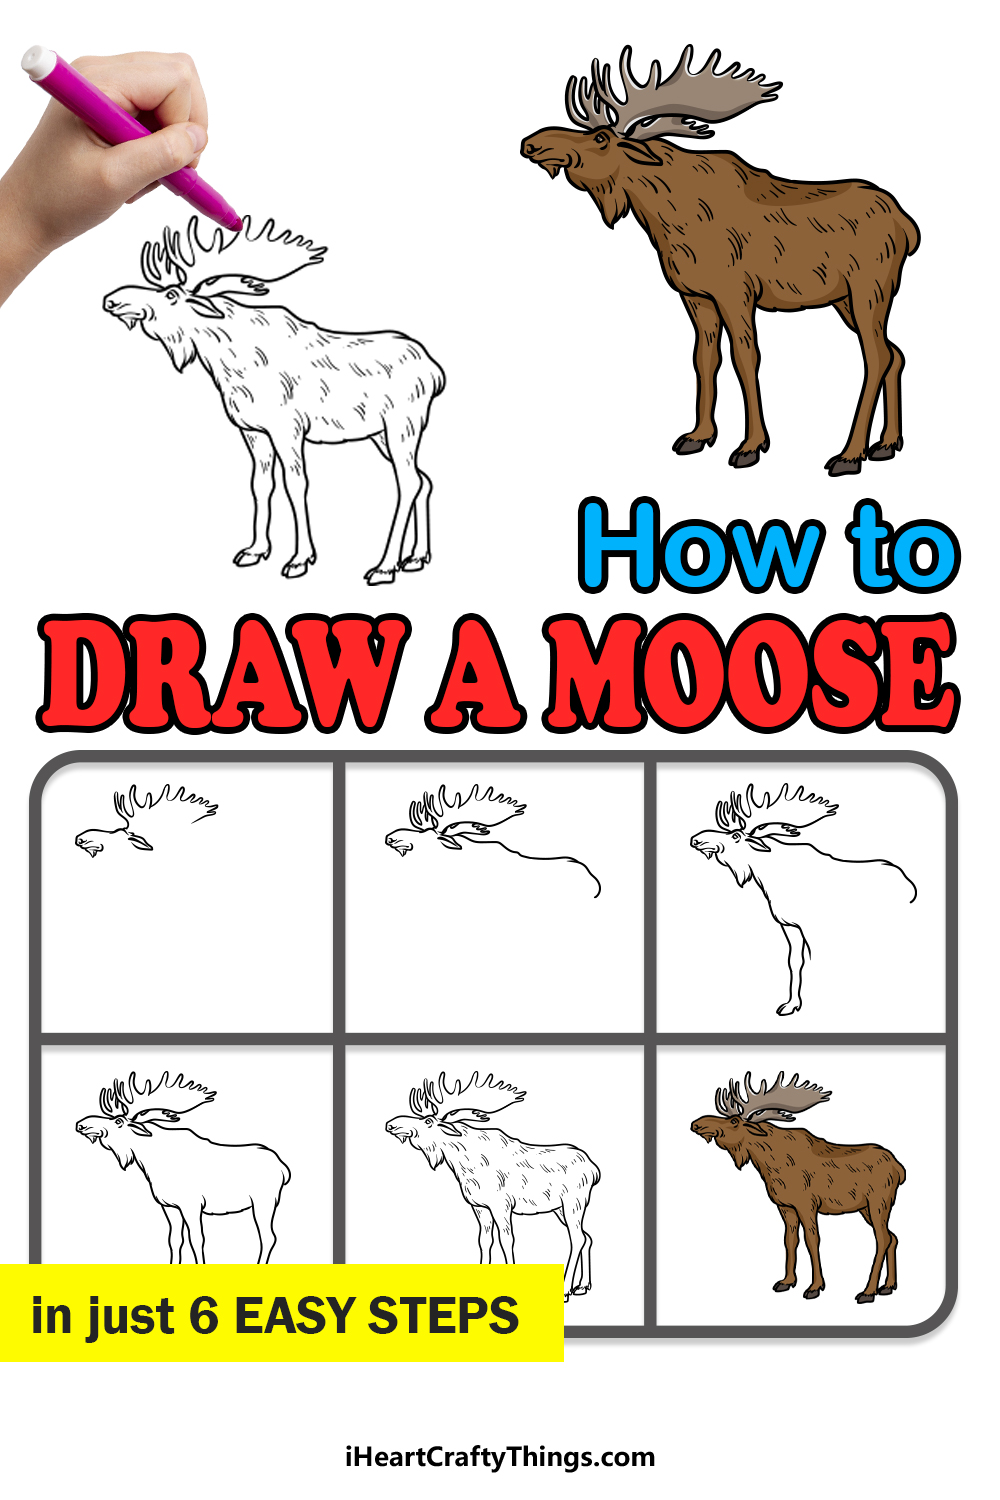 how to draw a moose in 6 easy steps